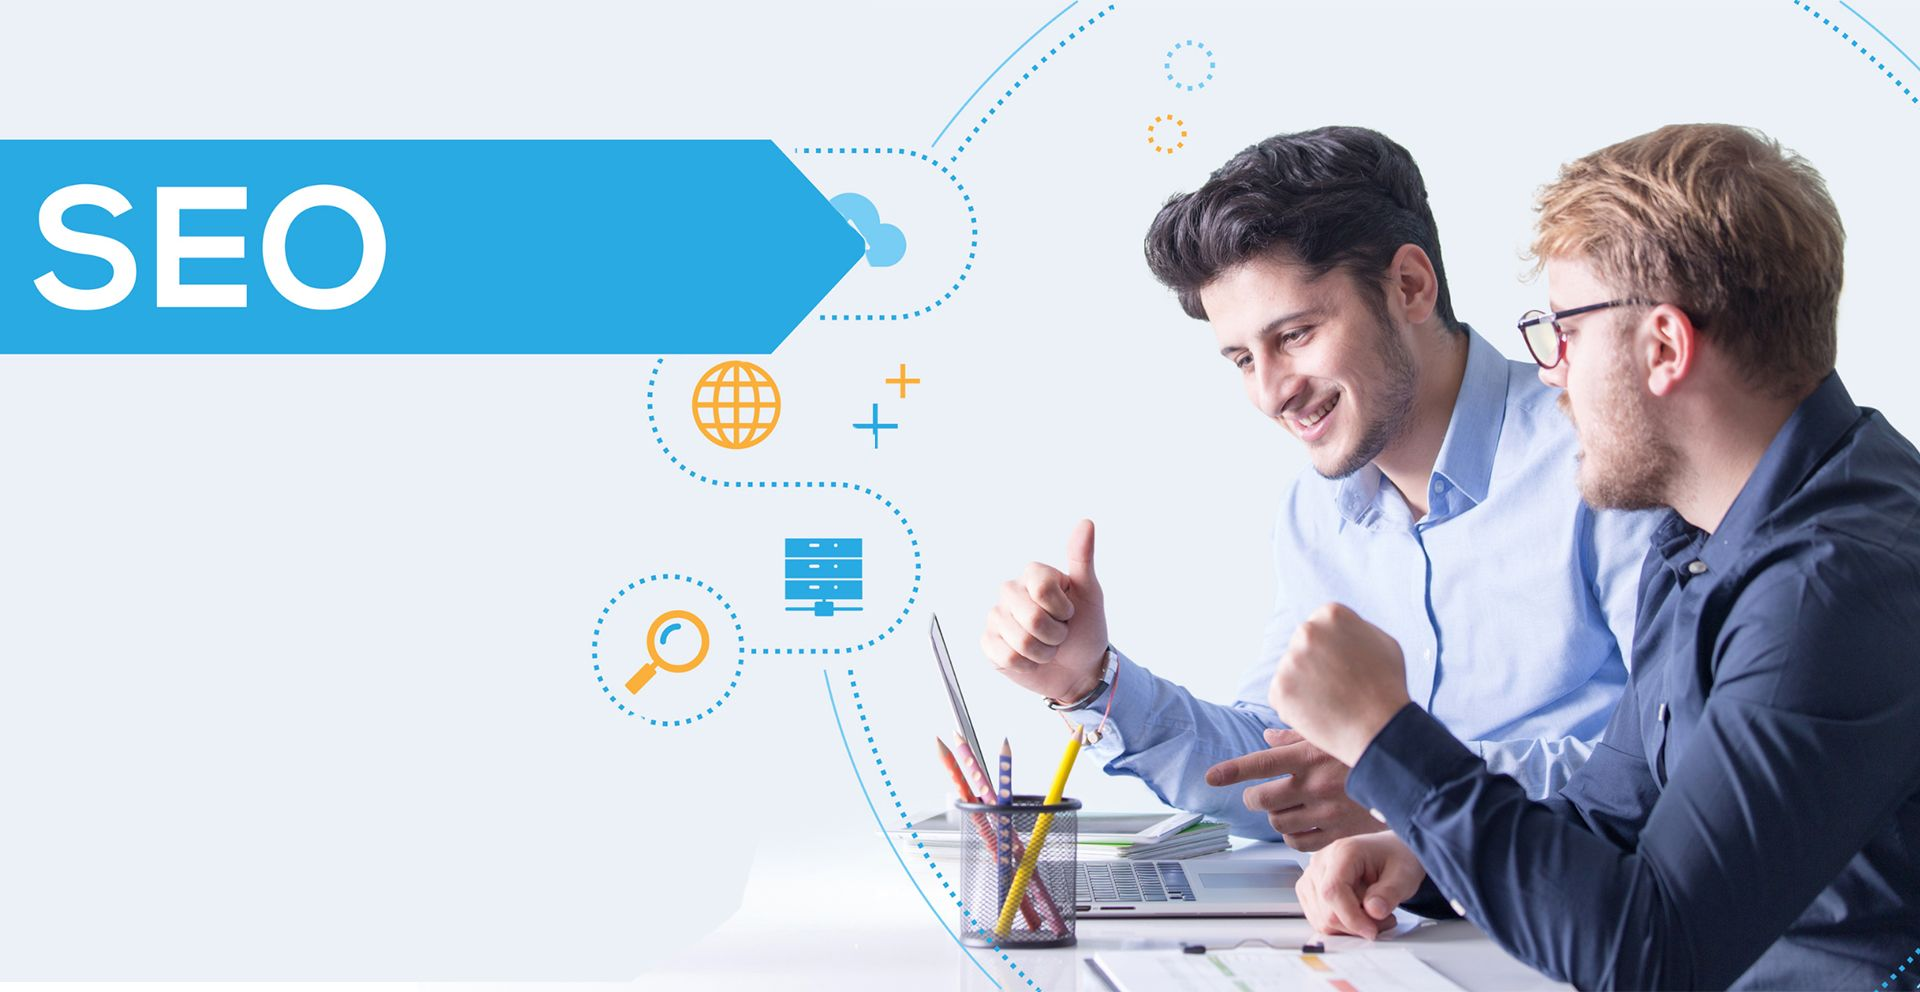 Best SEO Service Company Increase Website Traffic in Top Search Engines, Search  Engine Optimization Experts, Consultant | The Seo Company